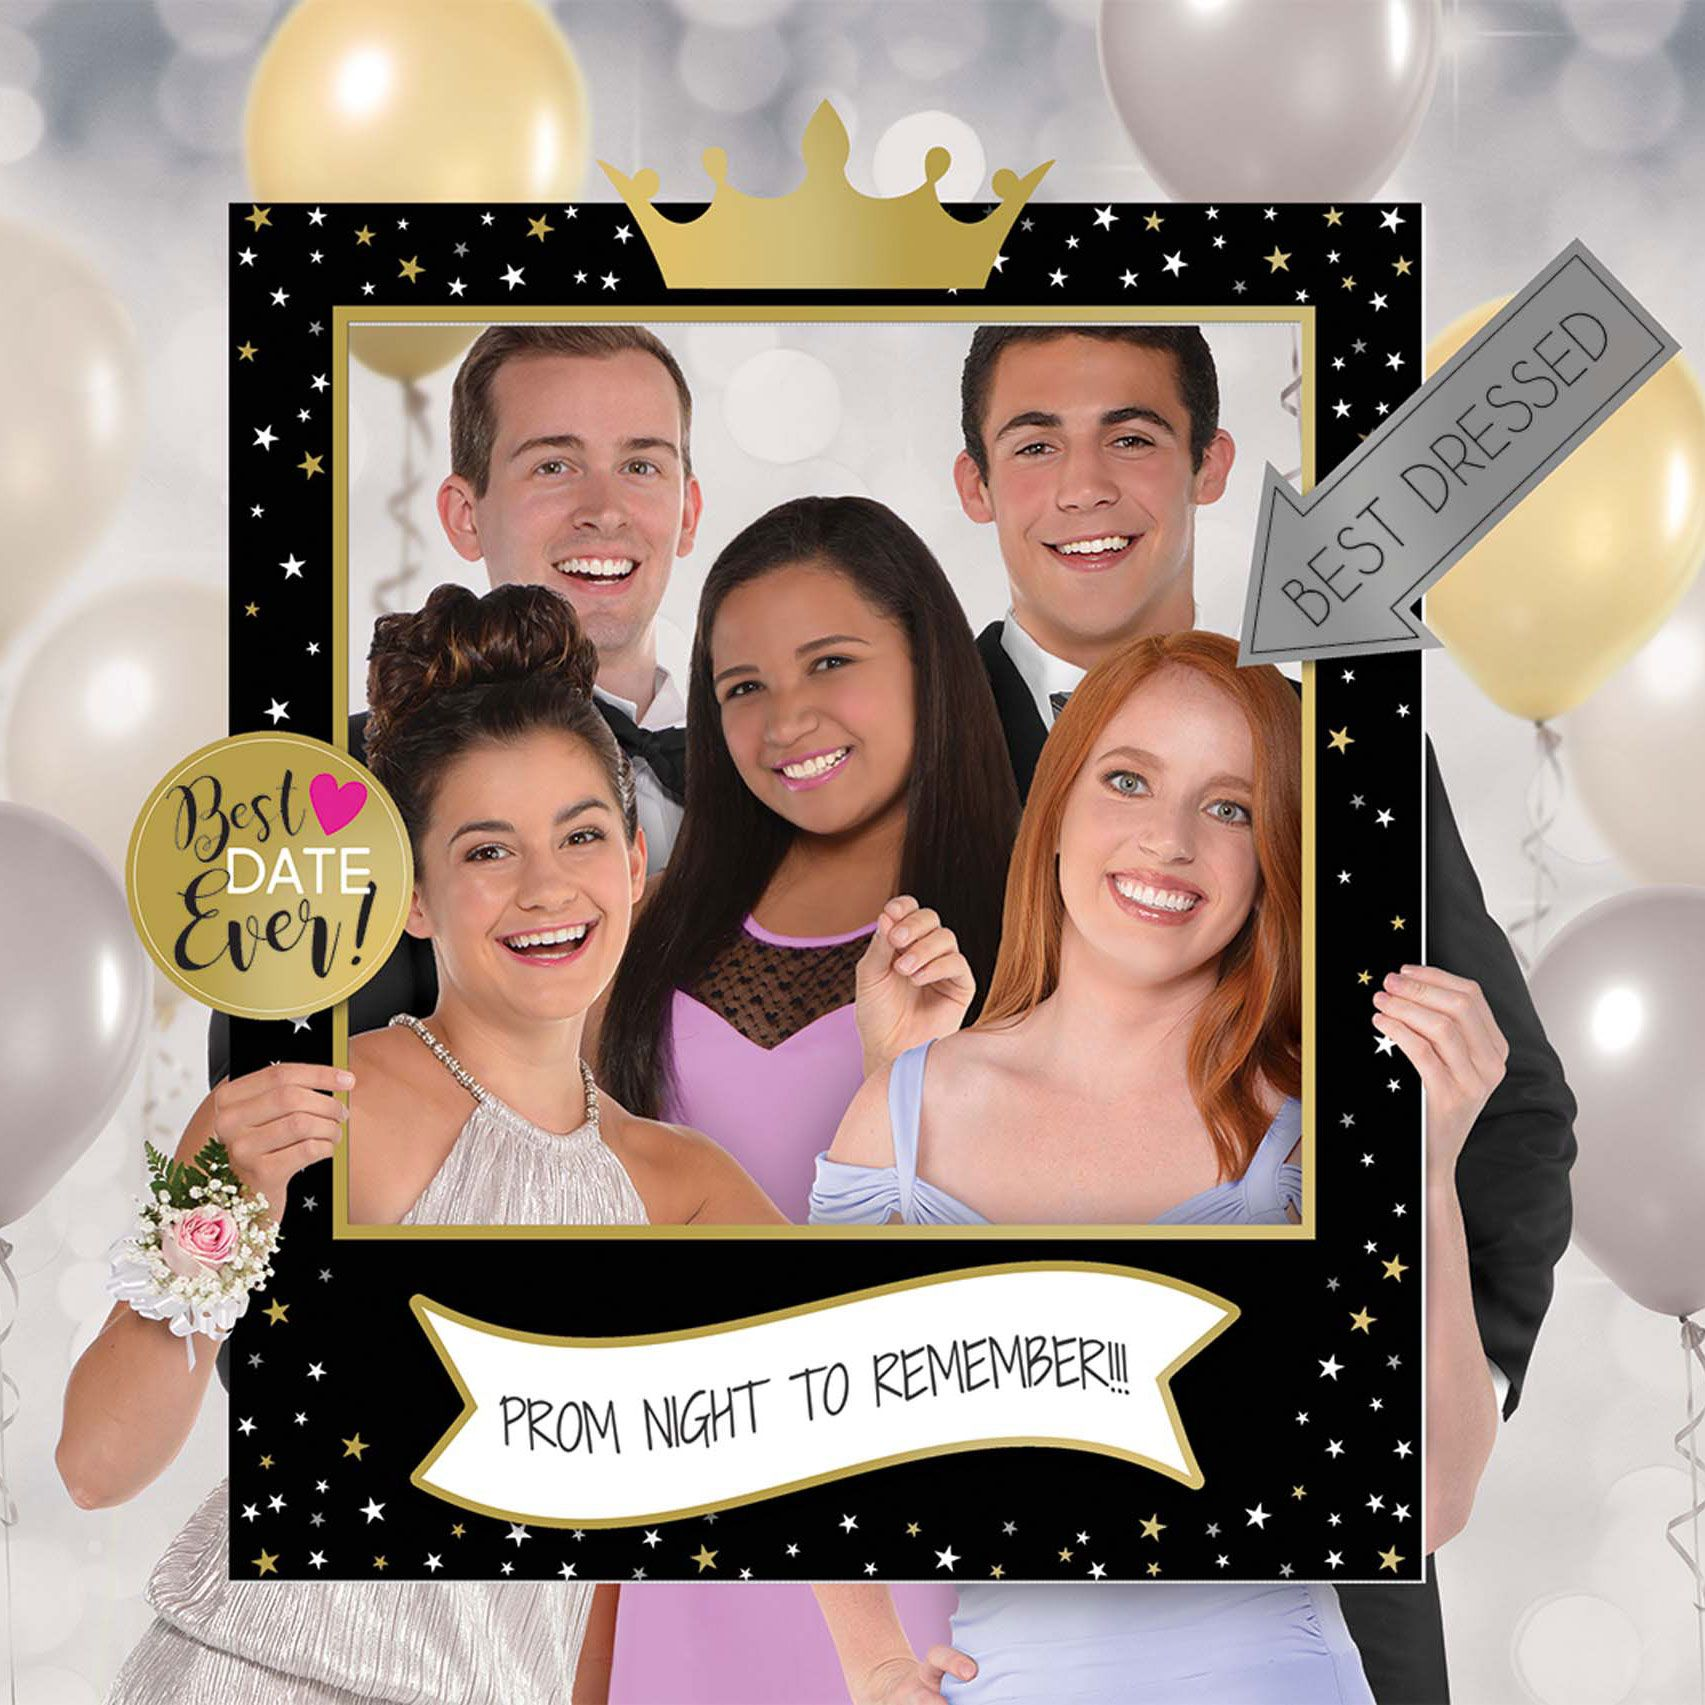 Prom Customizable Giant Selfie Frame Wedding Photo Booth Prom